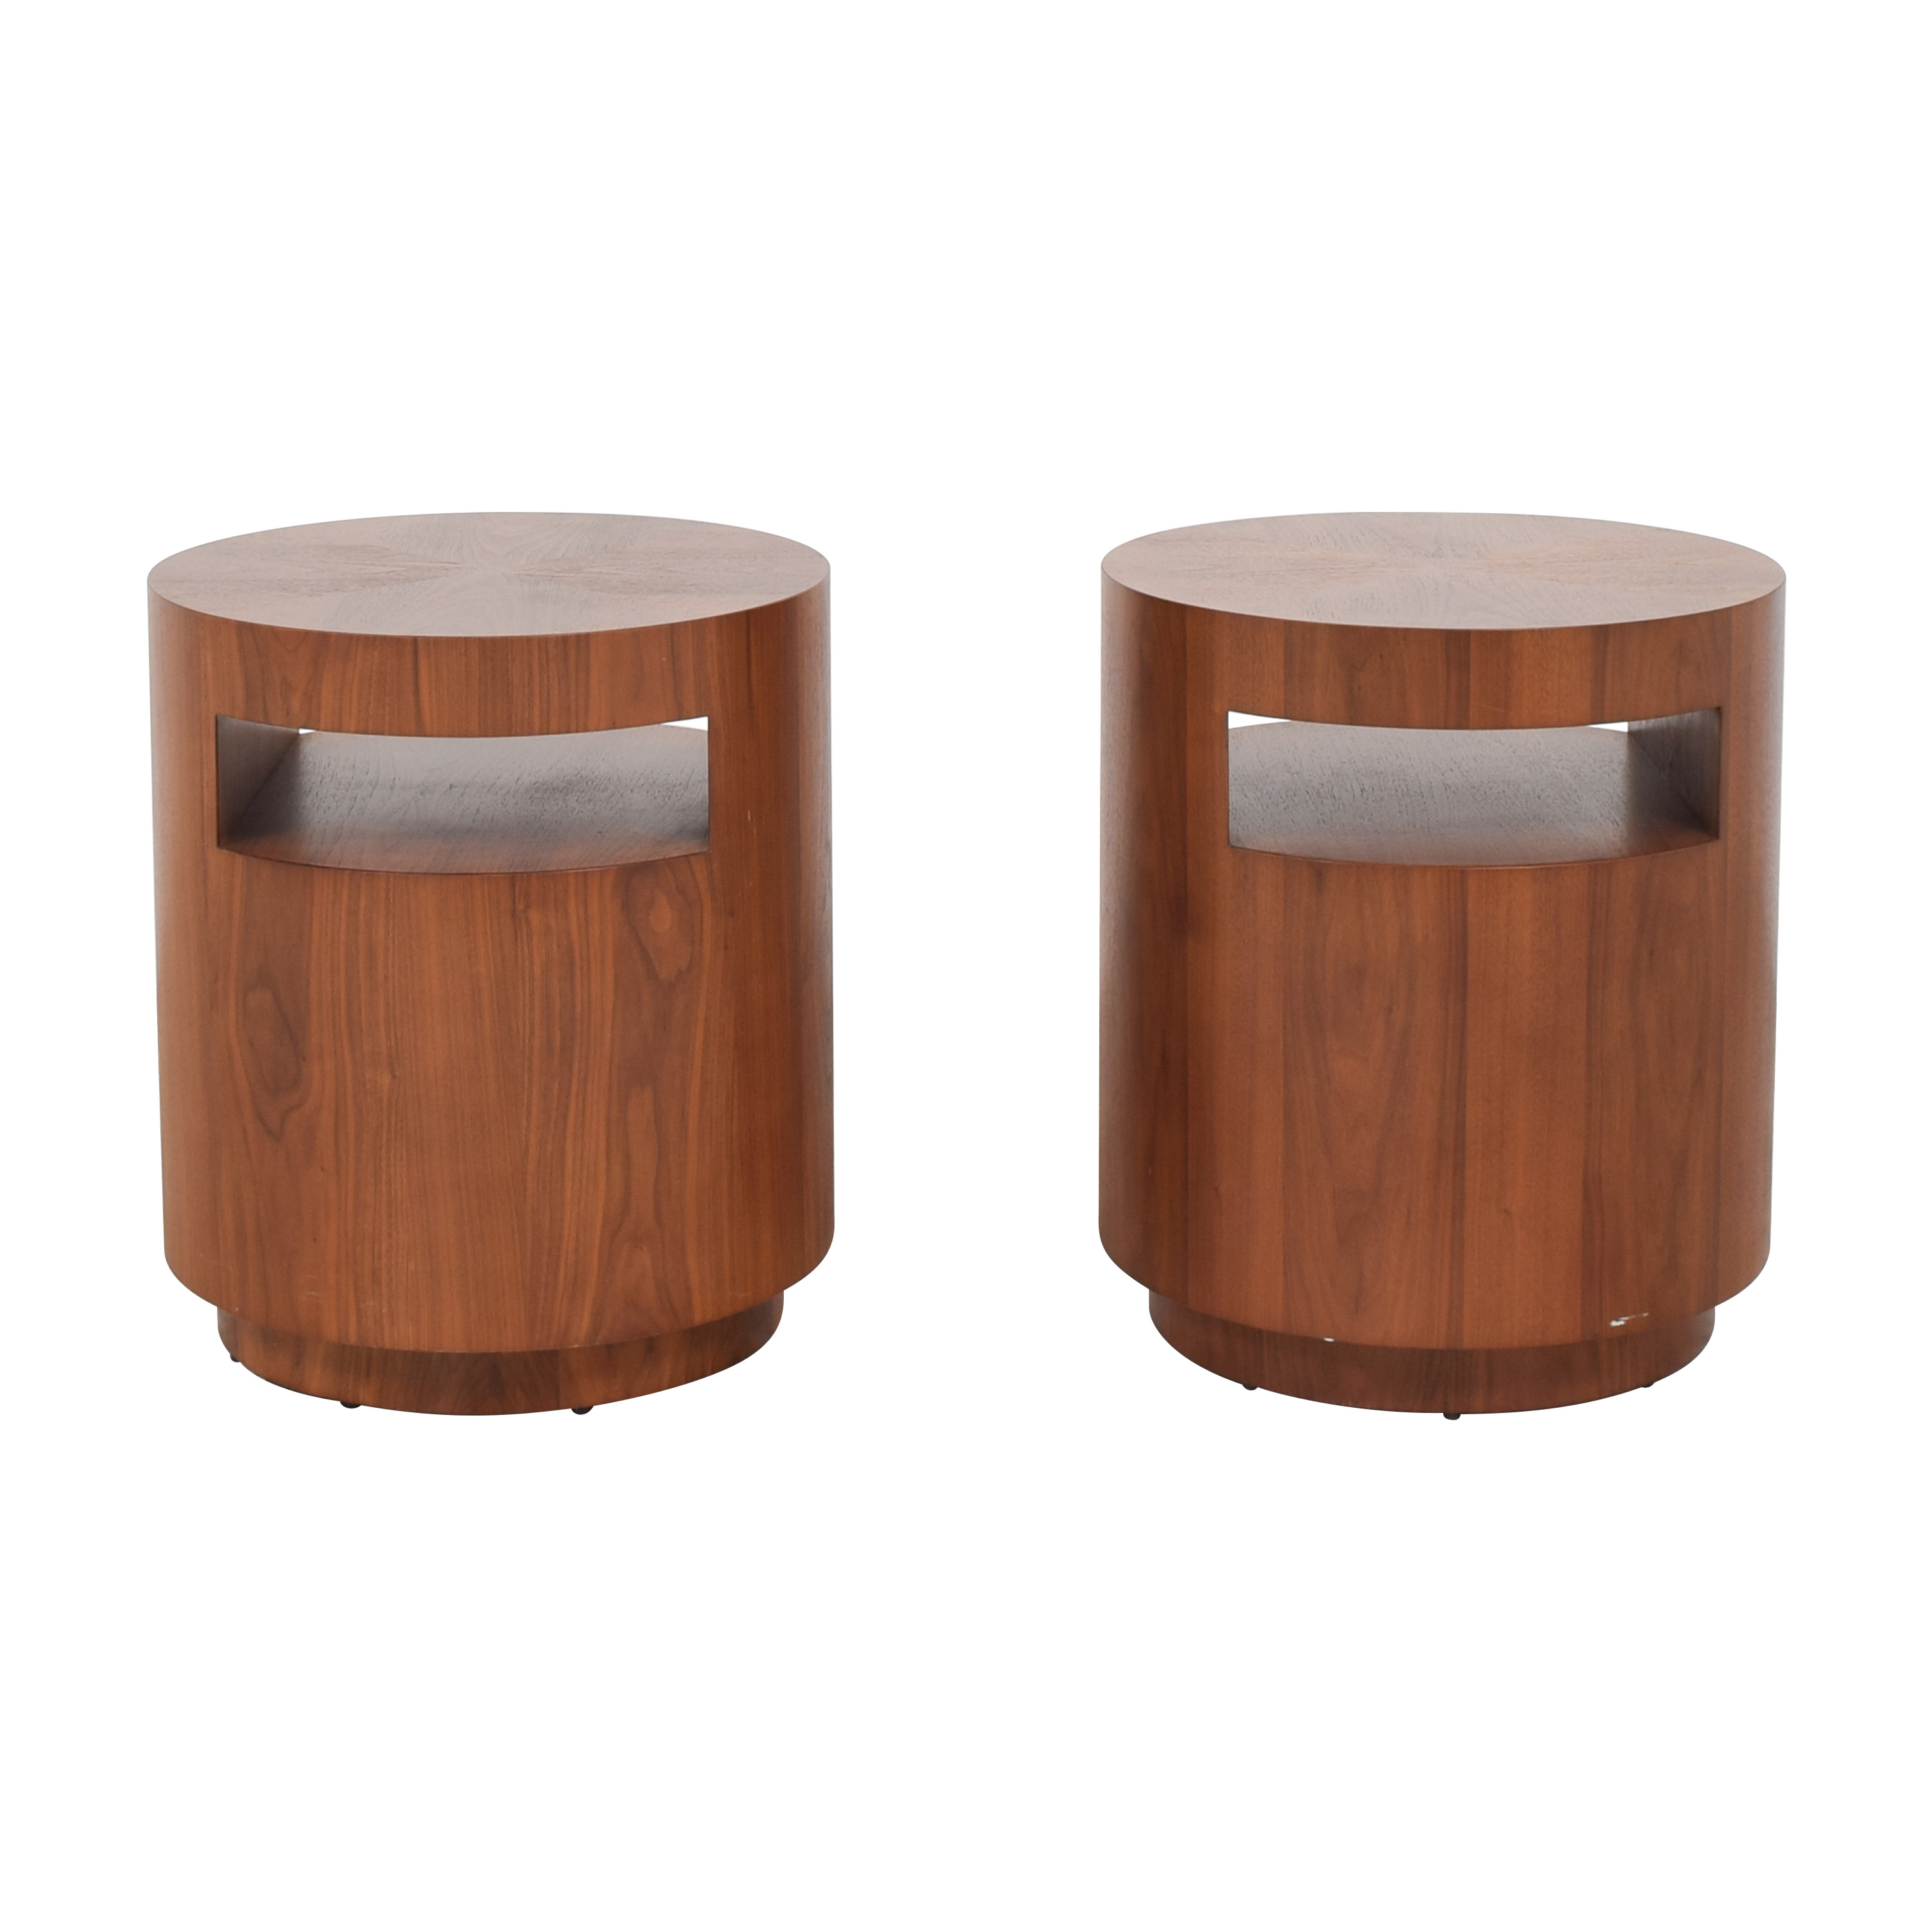 Crate & Barrel Tambe End Tables / Tables